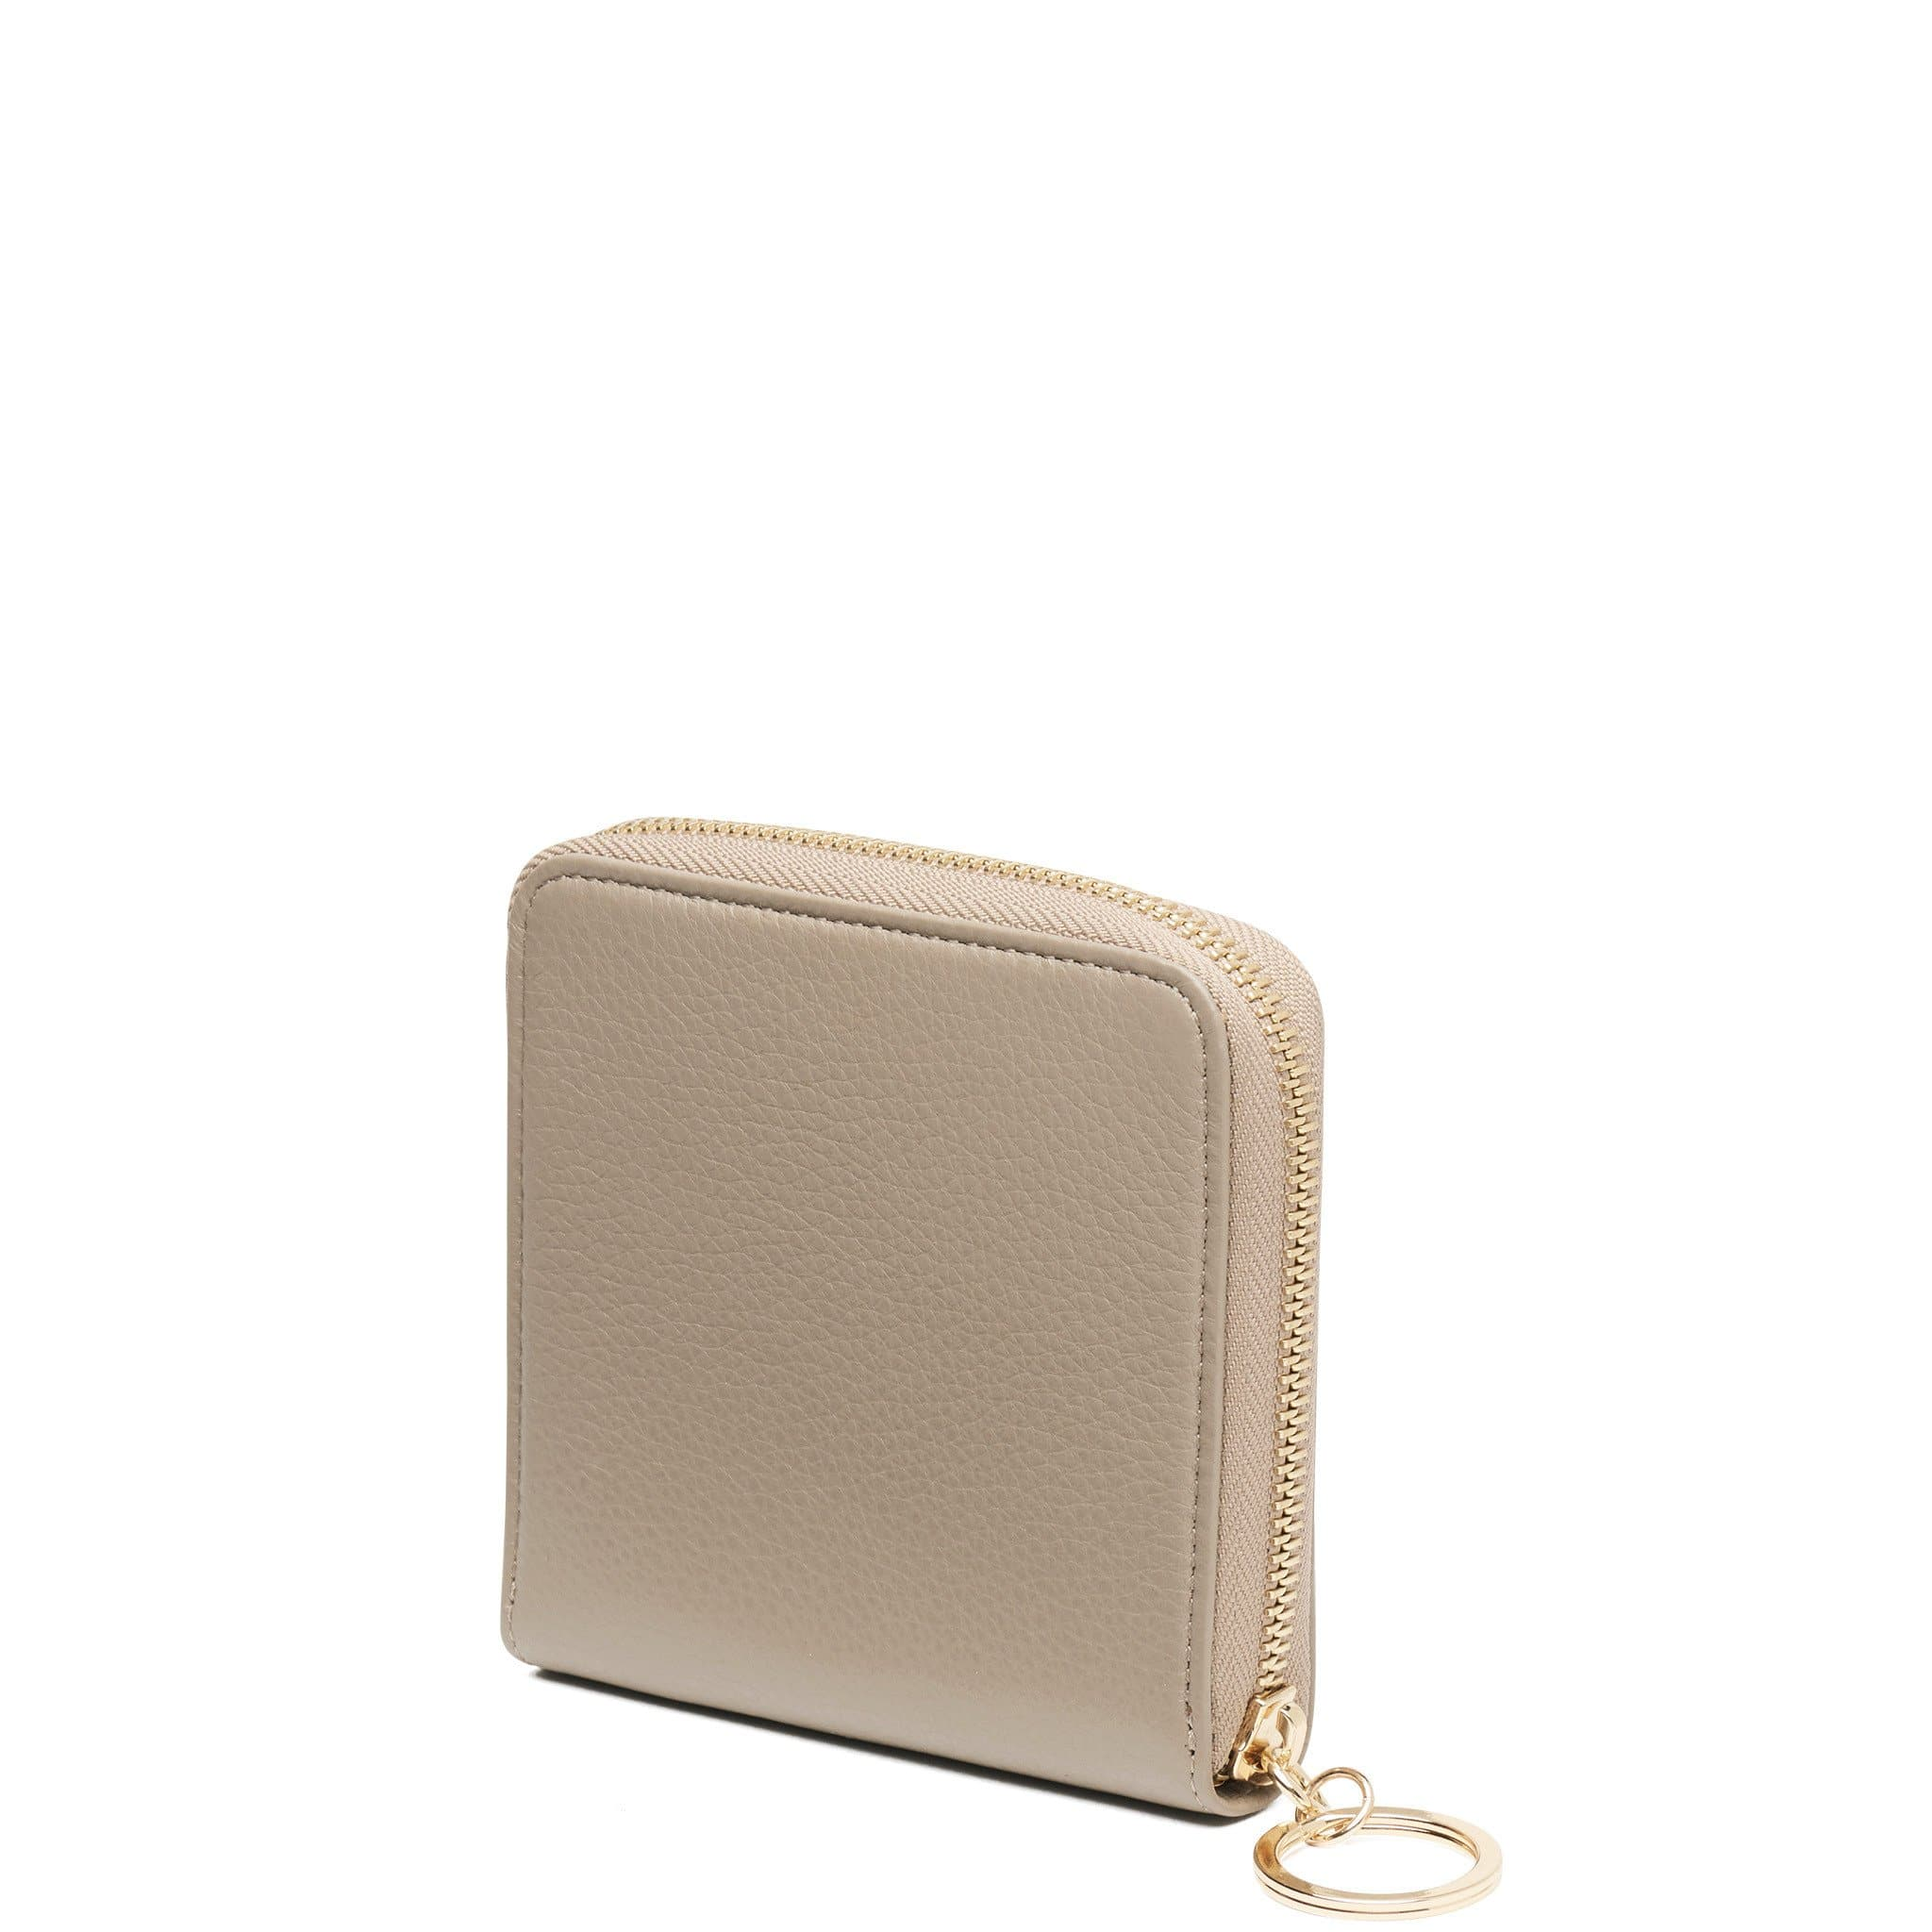 Half Zip Around Wallet - Taupe - OAD NEW YORK - 3